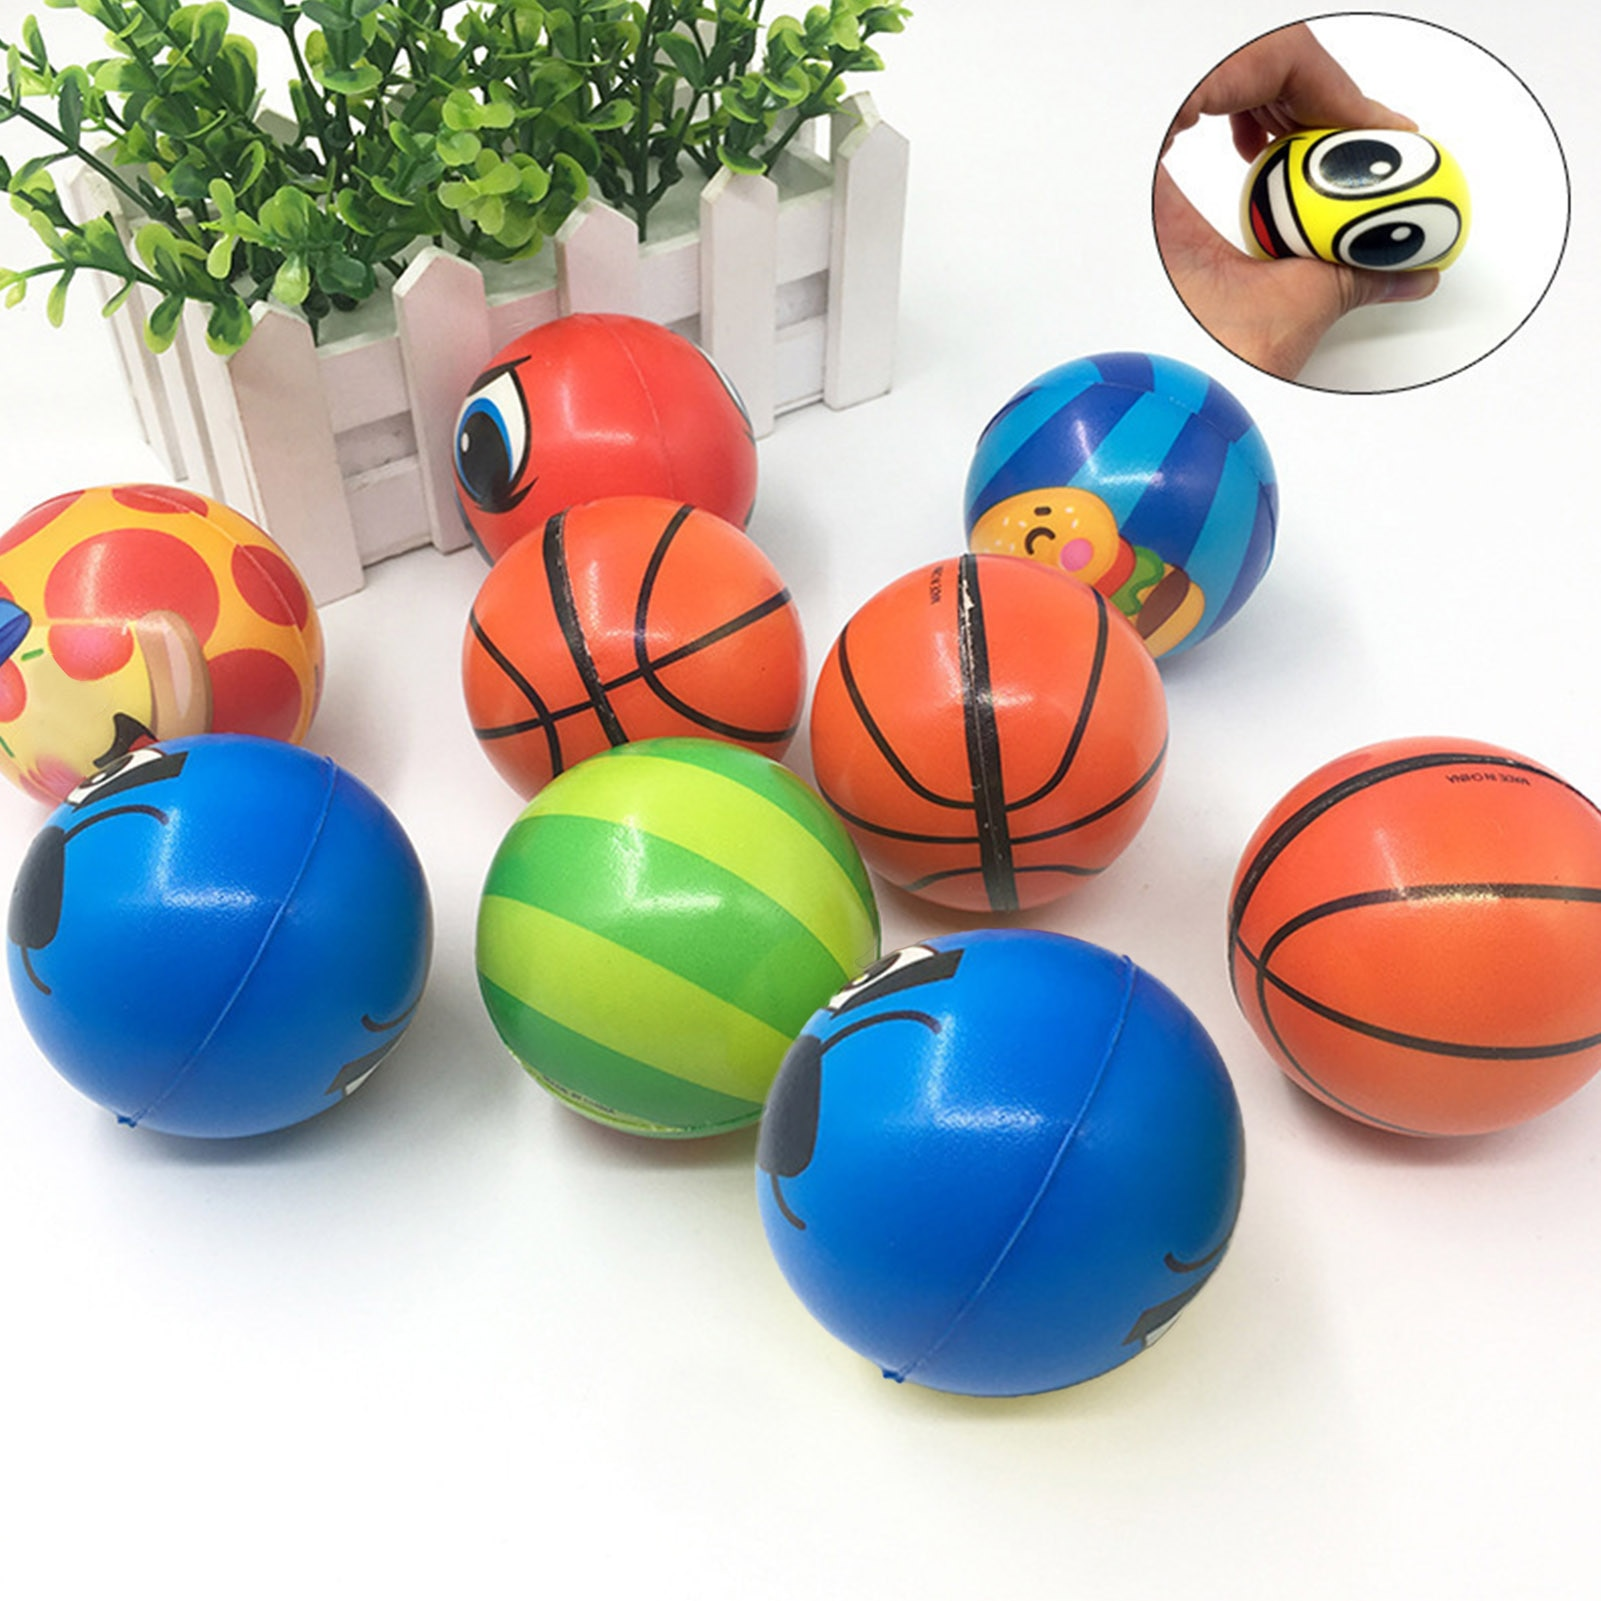 40PCS Fidget Toy Stress Relieve Balls Sensory Toy For ADHD Group Squishy Set Decompression Toys ADD enlarge